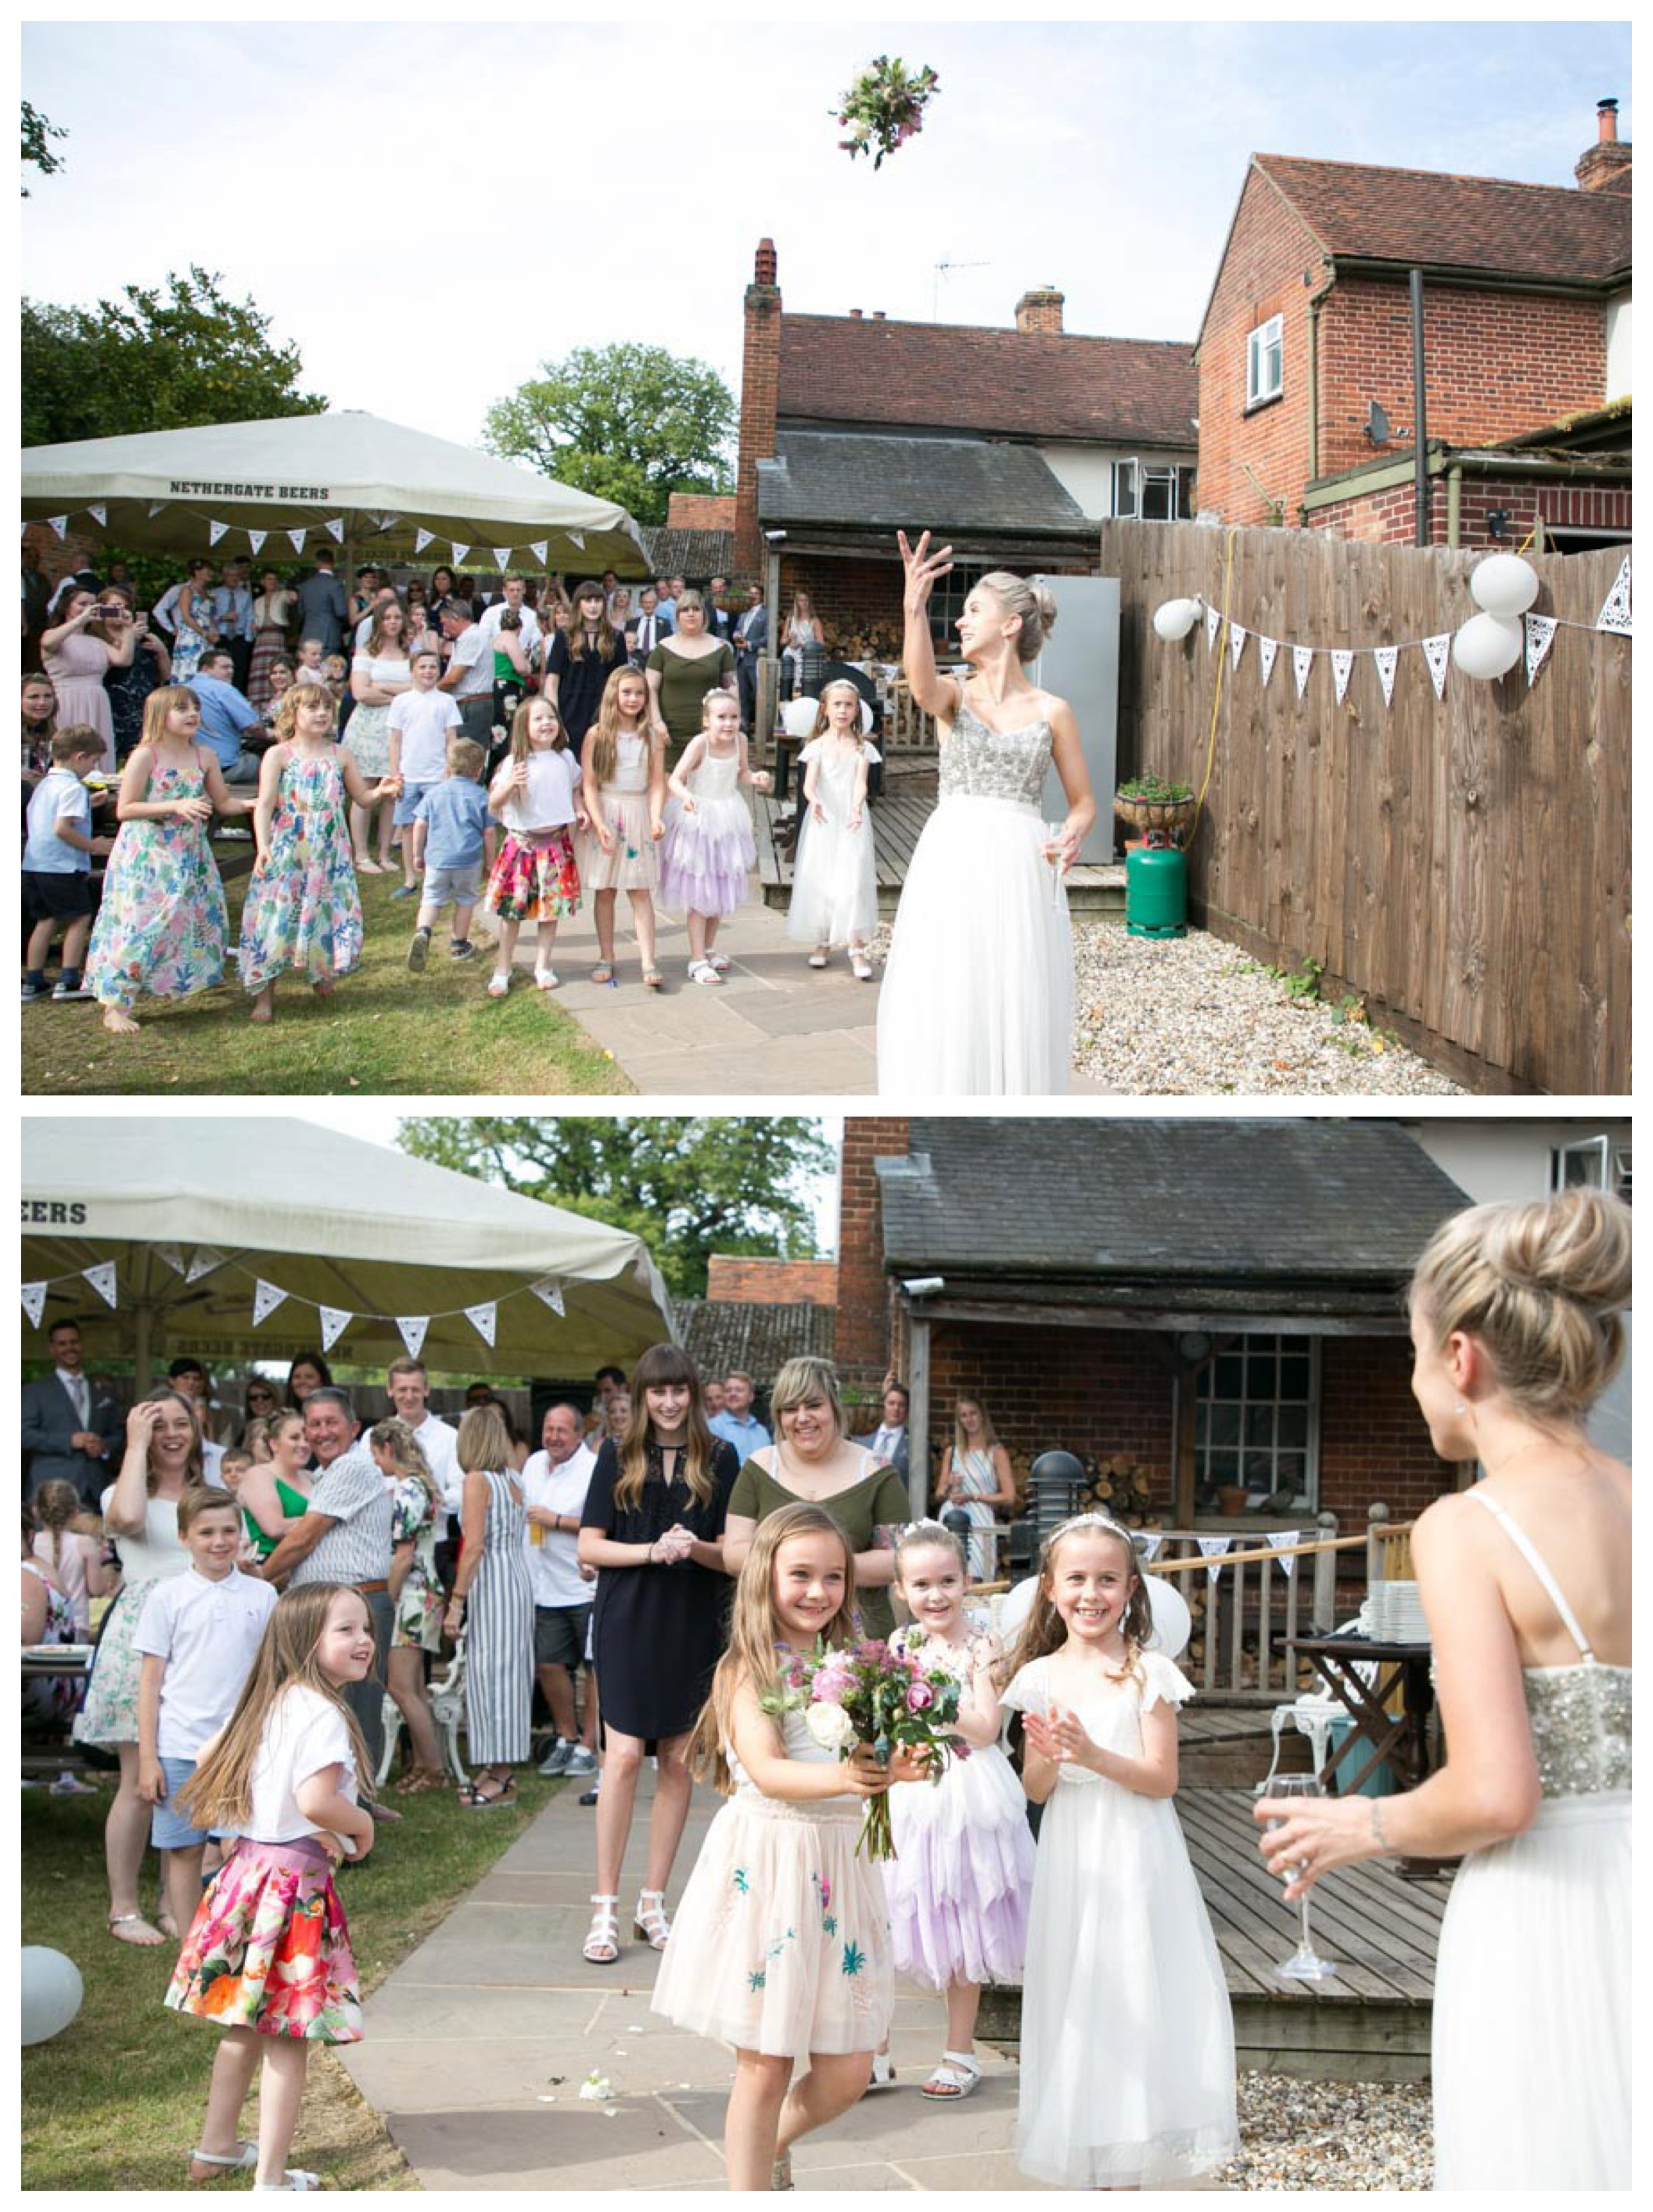 bride throwing the bouquet at pub garden wedding reception